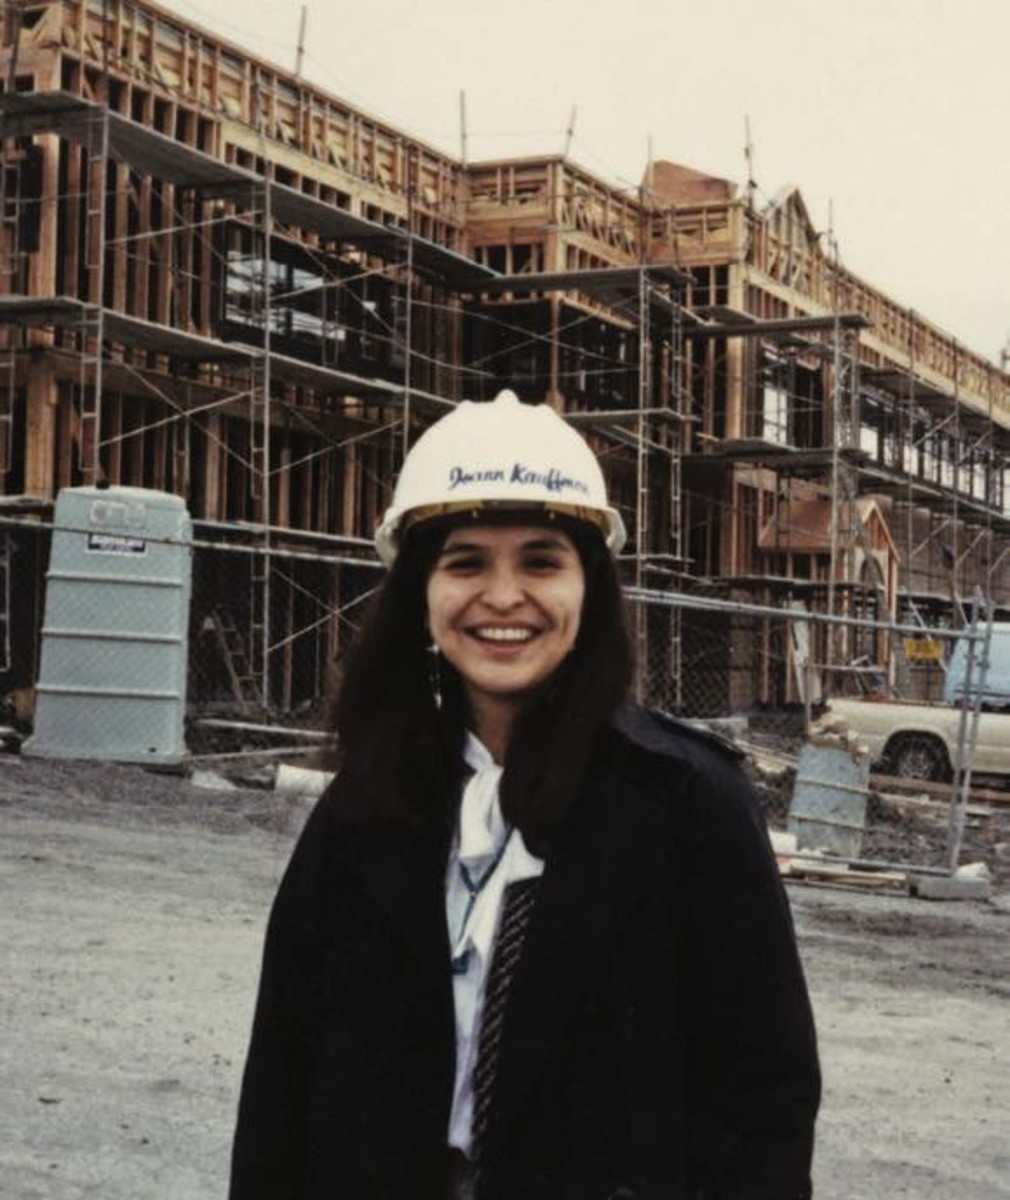 JoAnn Kauffman, Among her landmark achievements, JoAnn cleared the way for the Chief Leschi Center in Seattle.